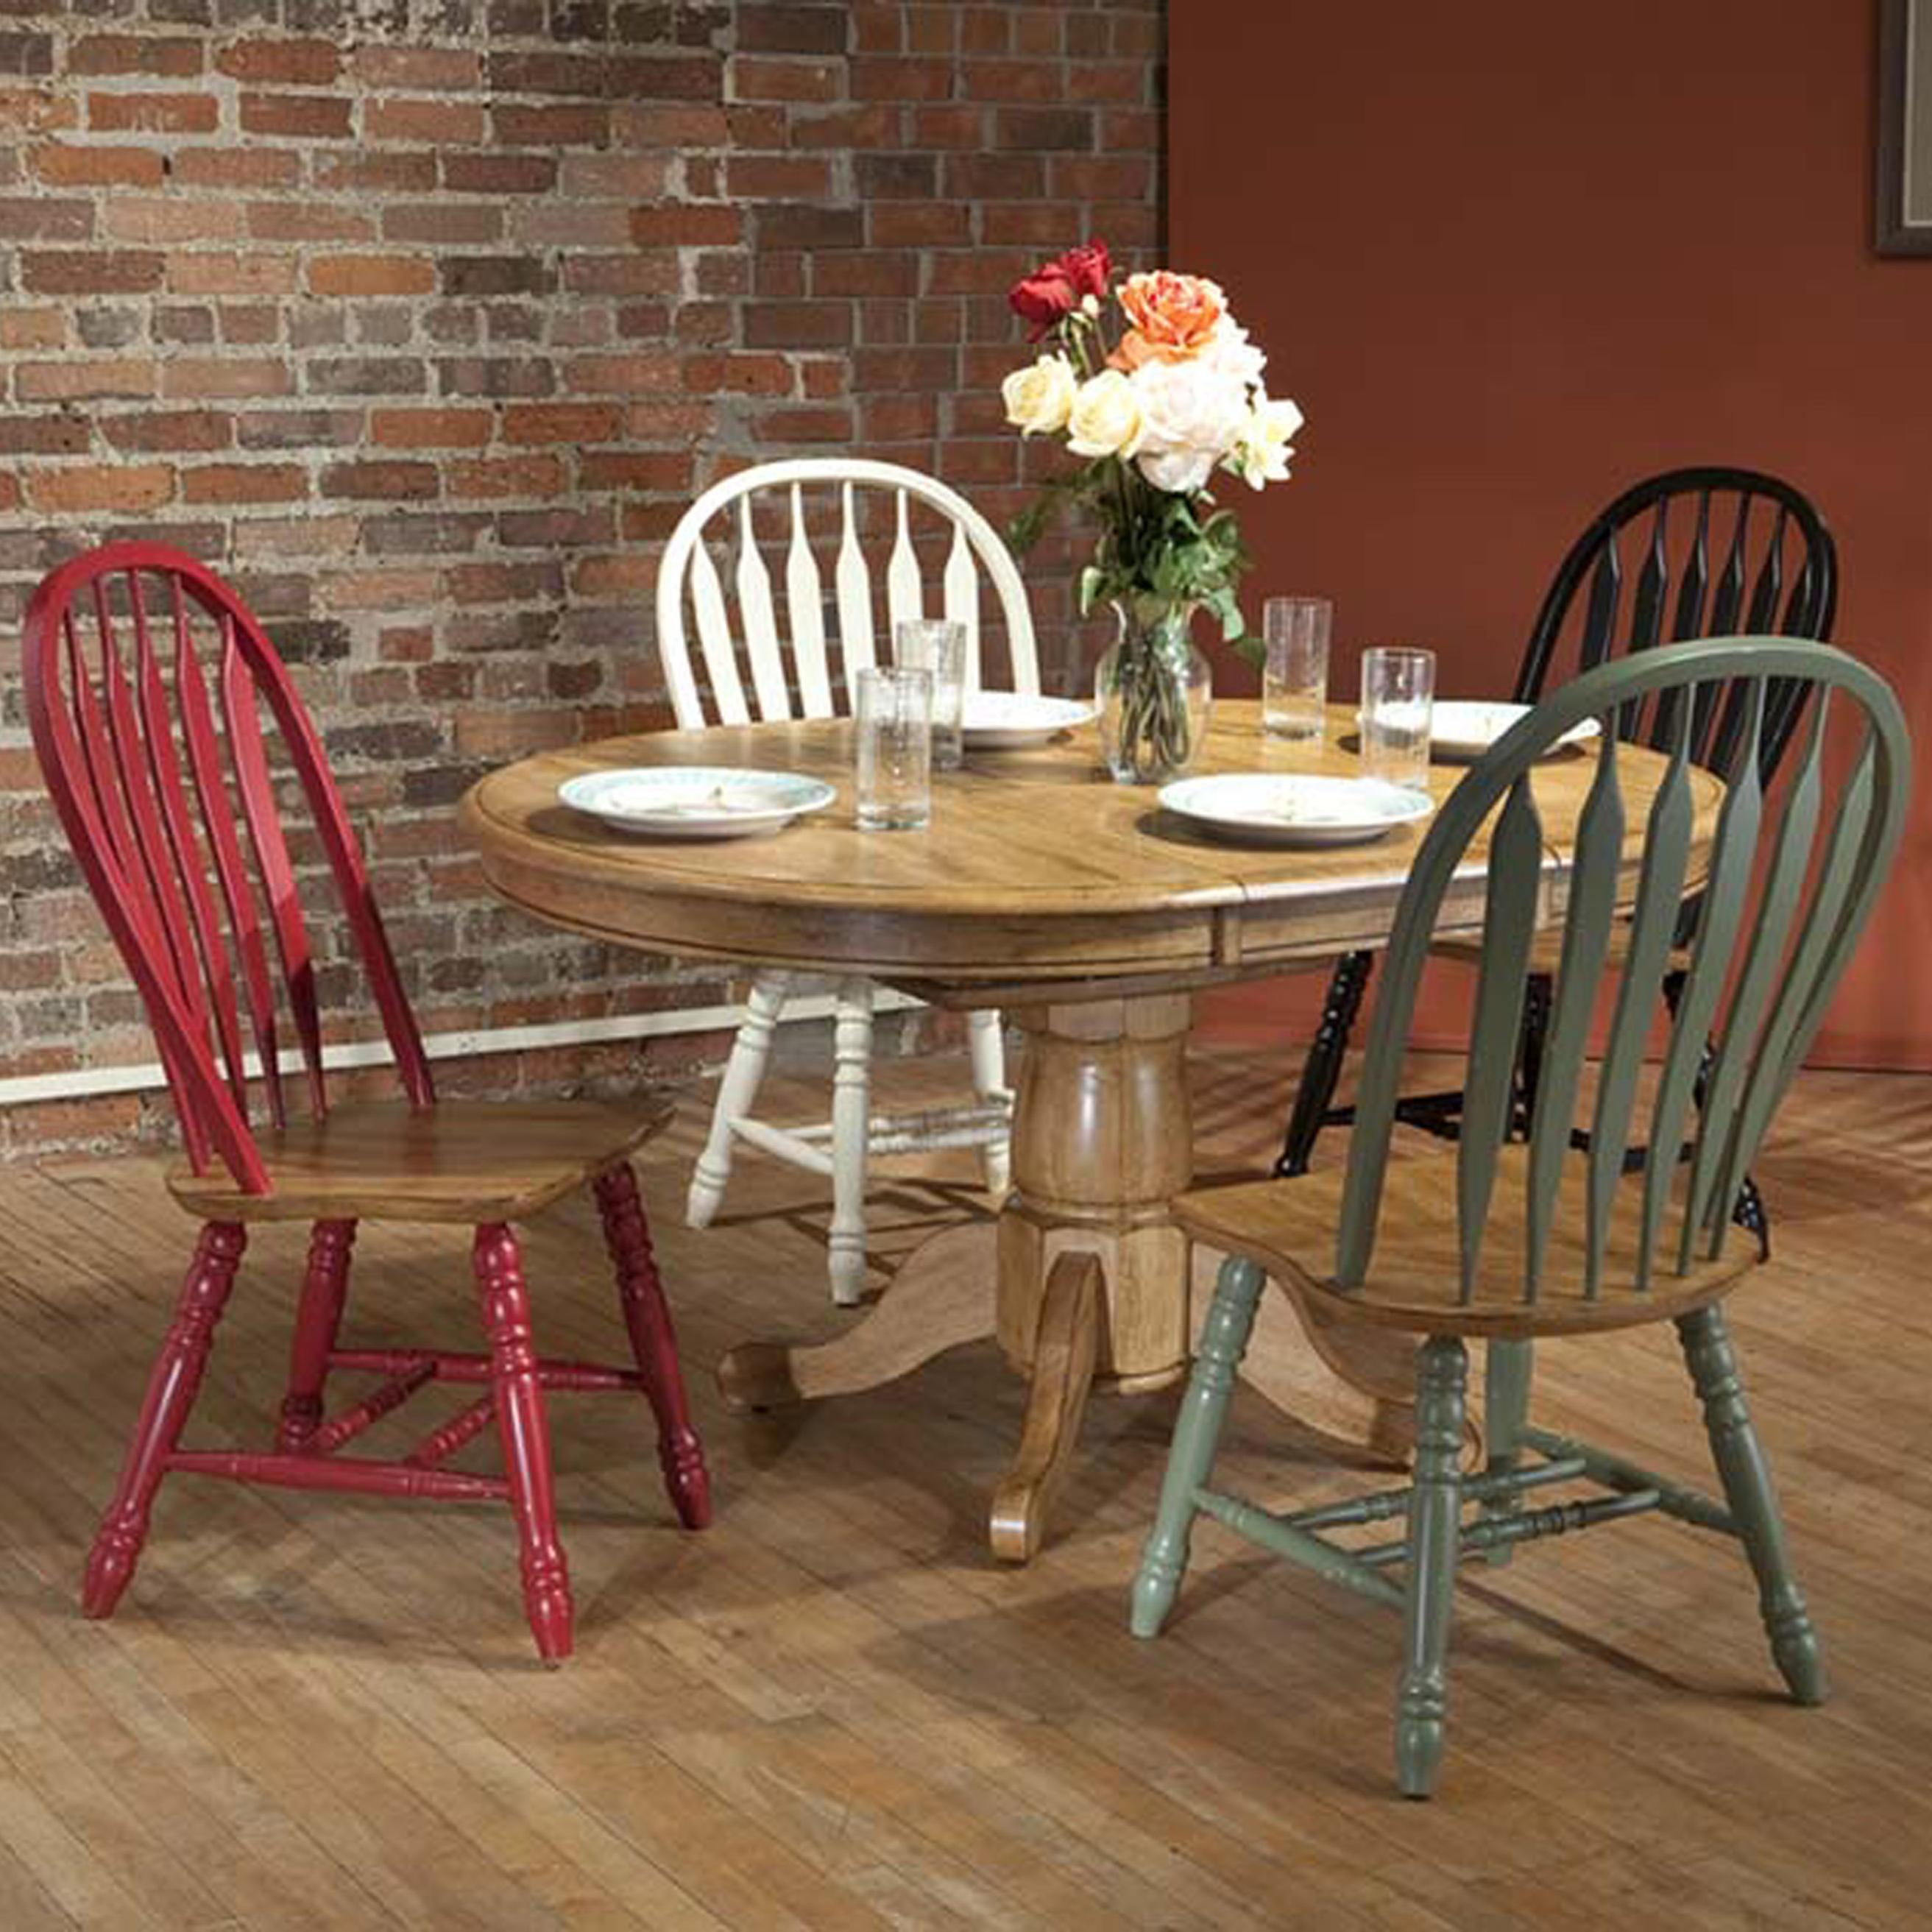 E.C.I. Furniture Dining  5 Piece Set - Item Number: 2150-04-T/P/290-15/20/10/12